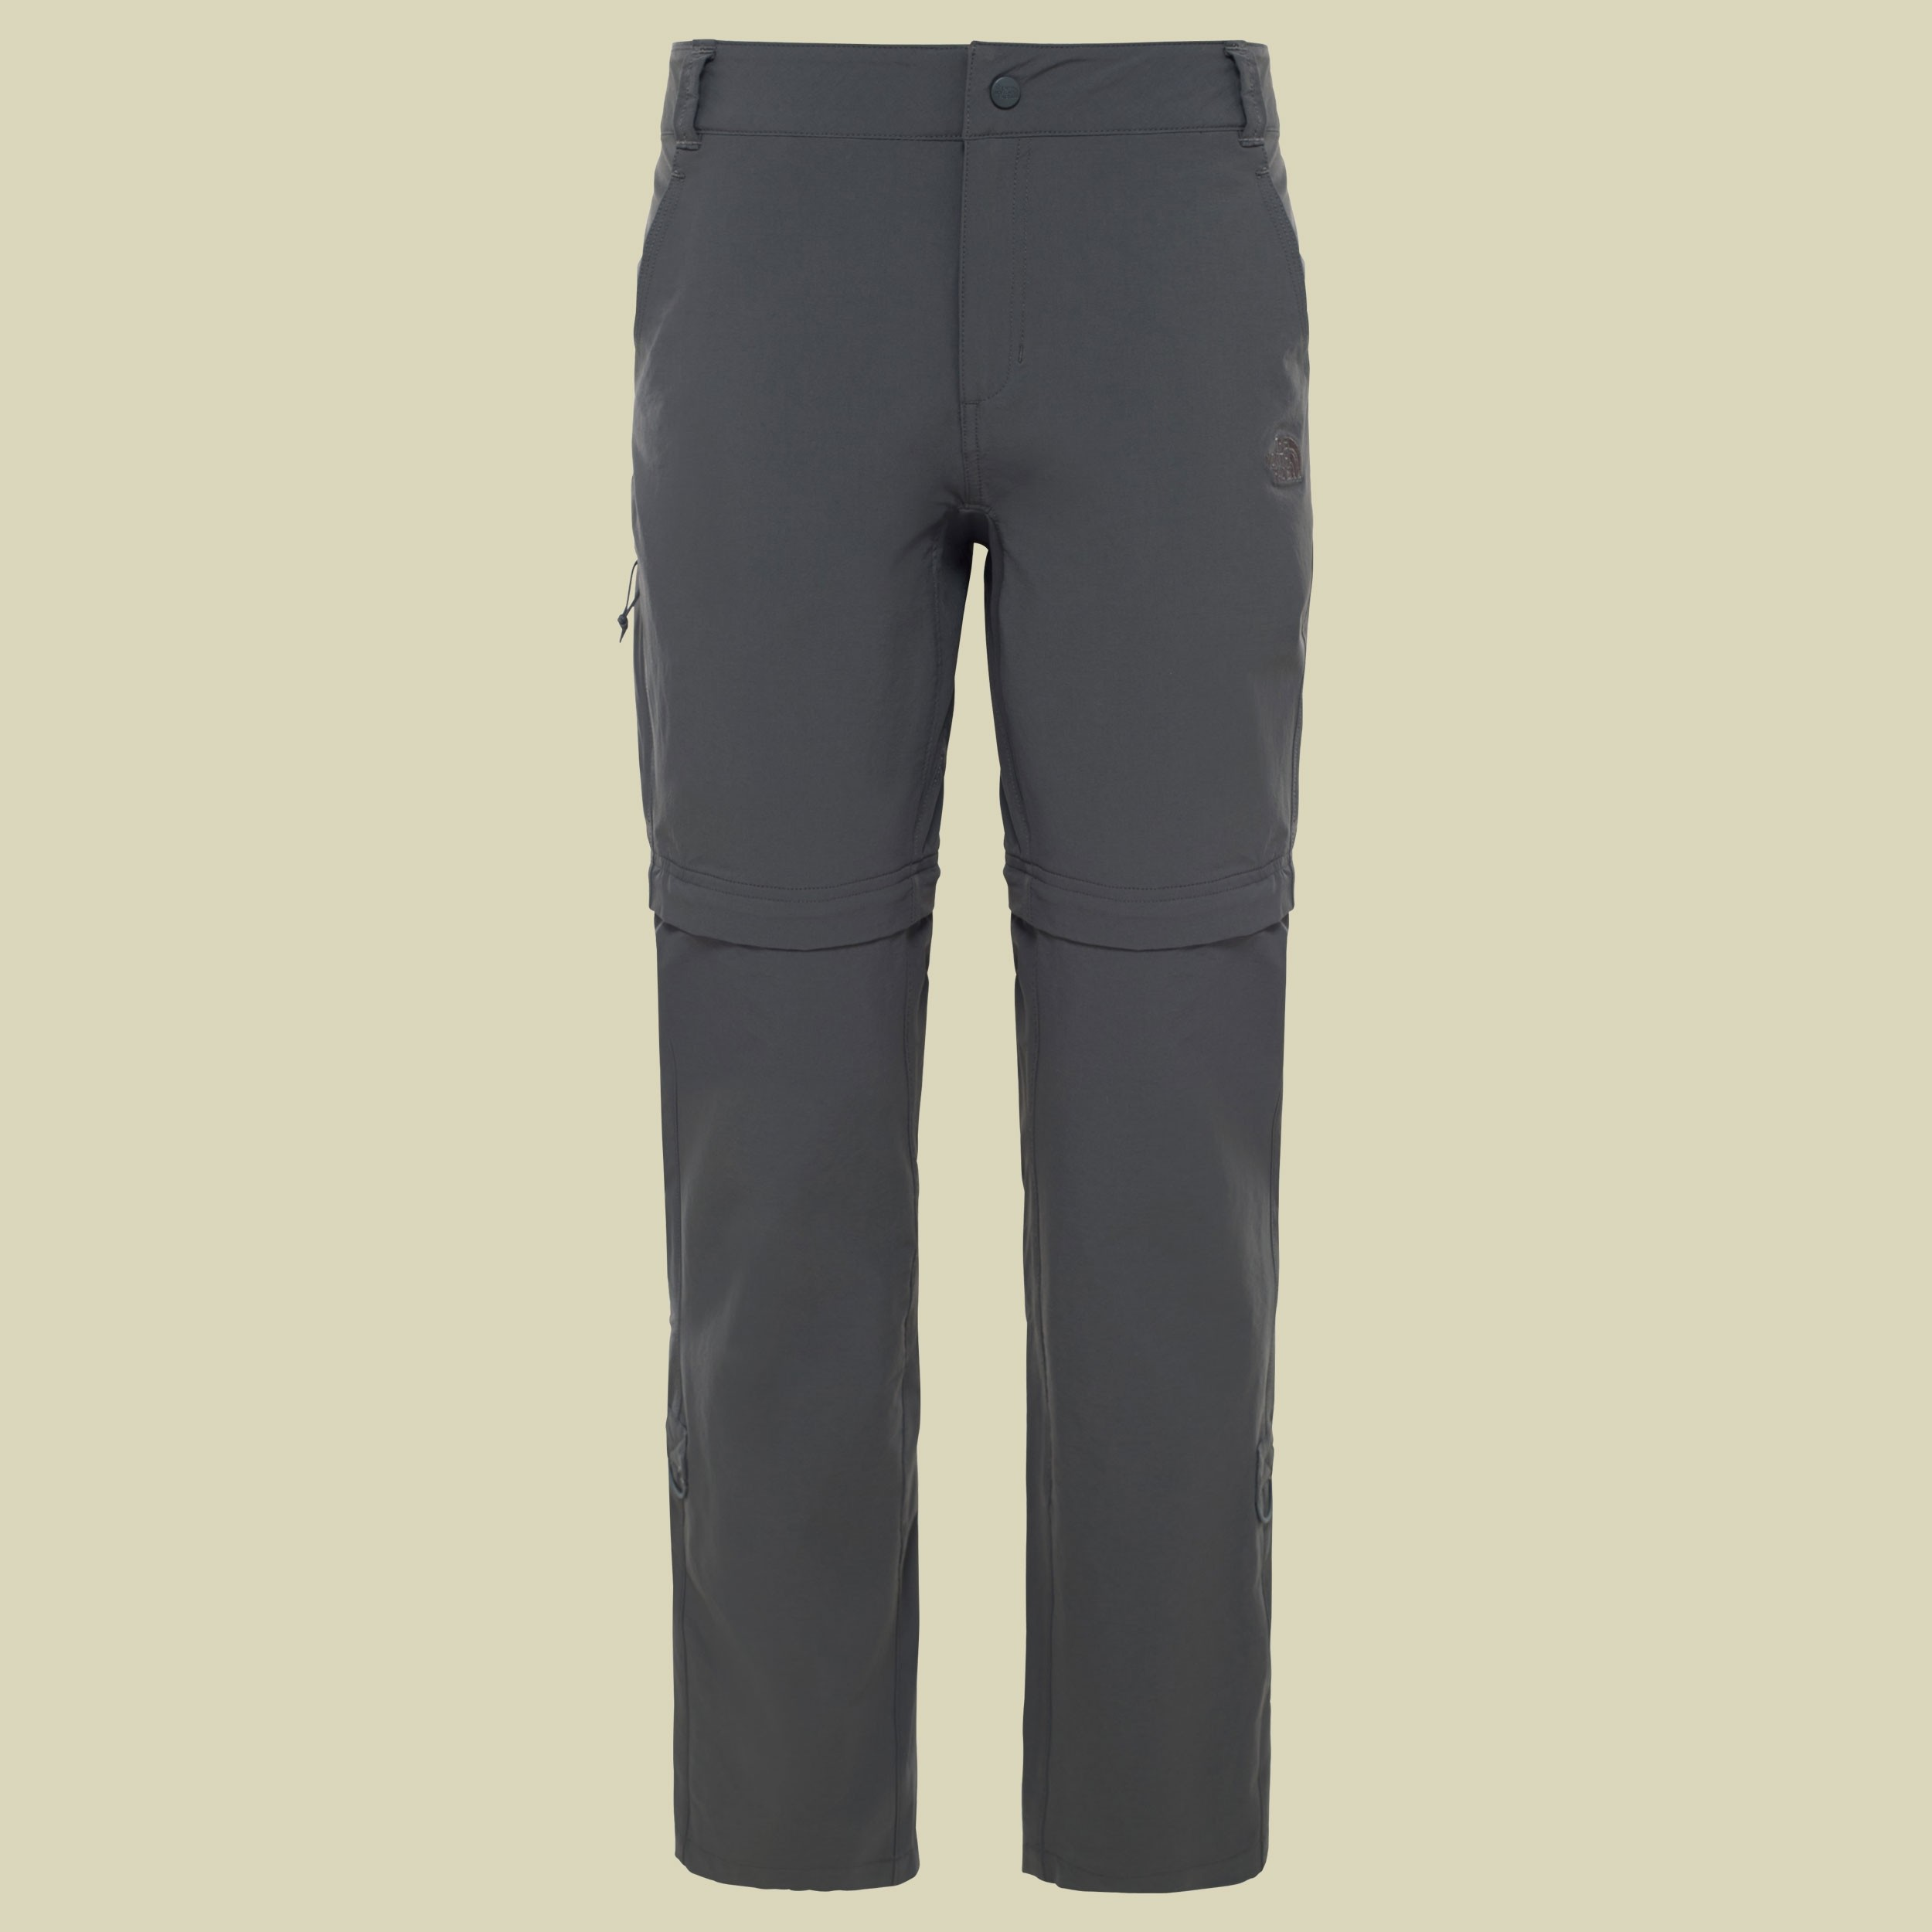 Exploration Convertible Pant Women